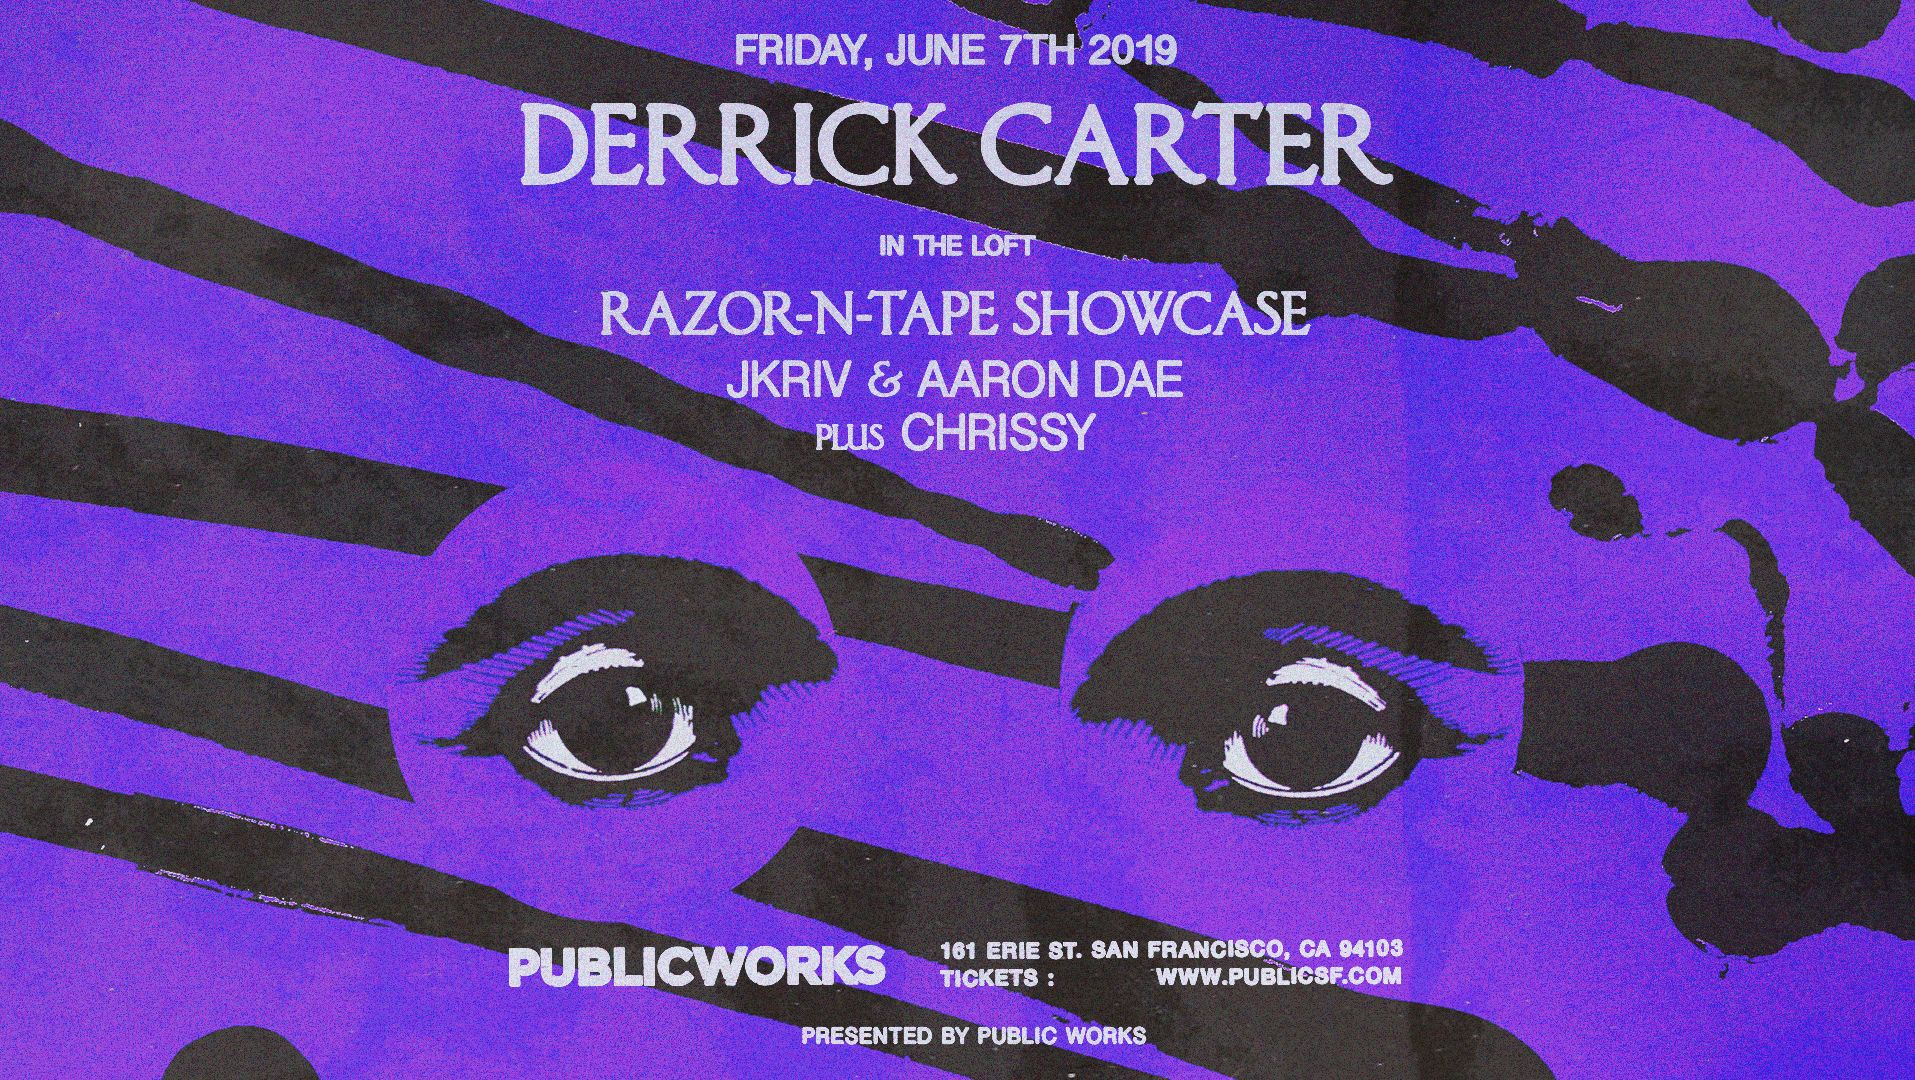 derrick carter + razor-n-tape showcase - 9:30 PM